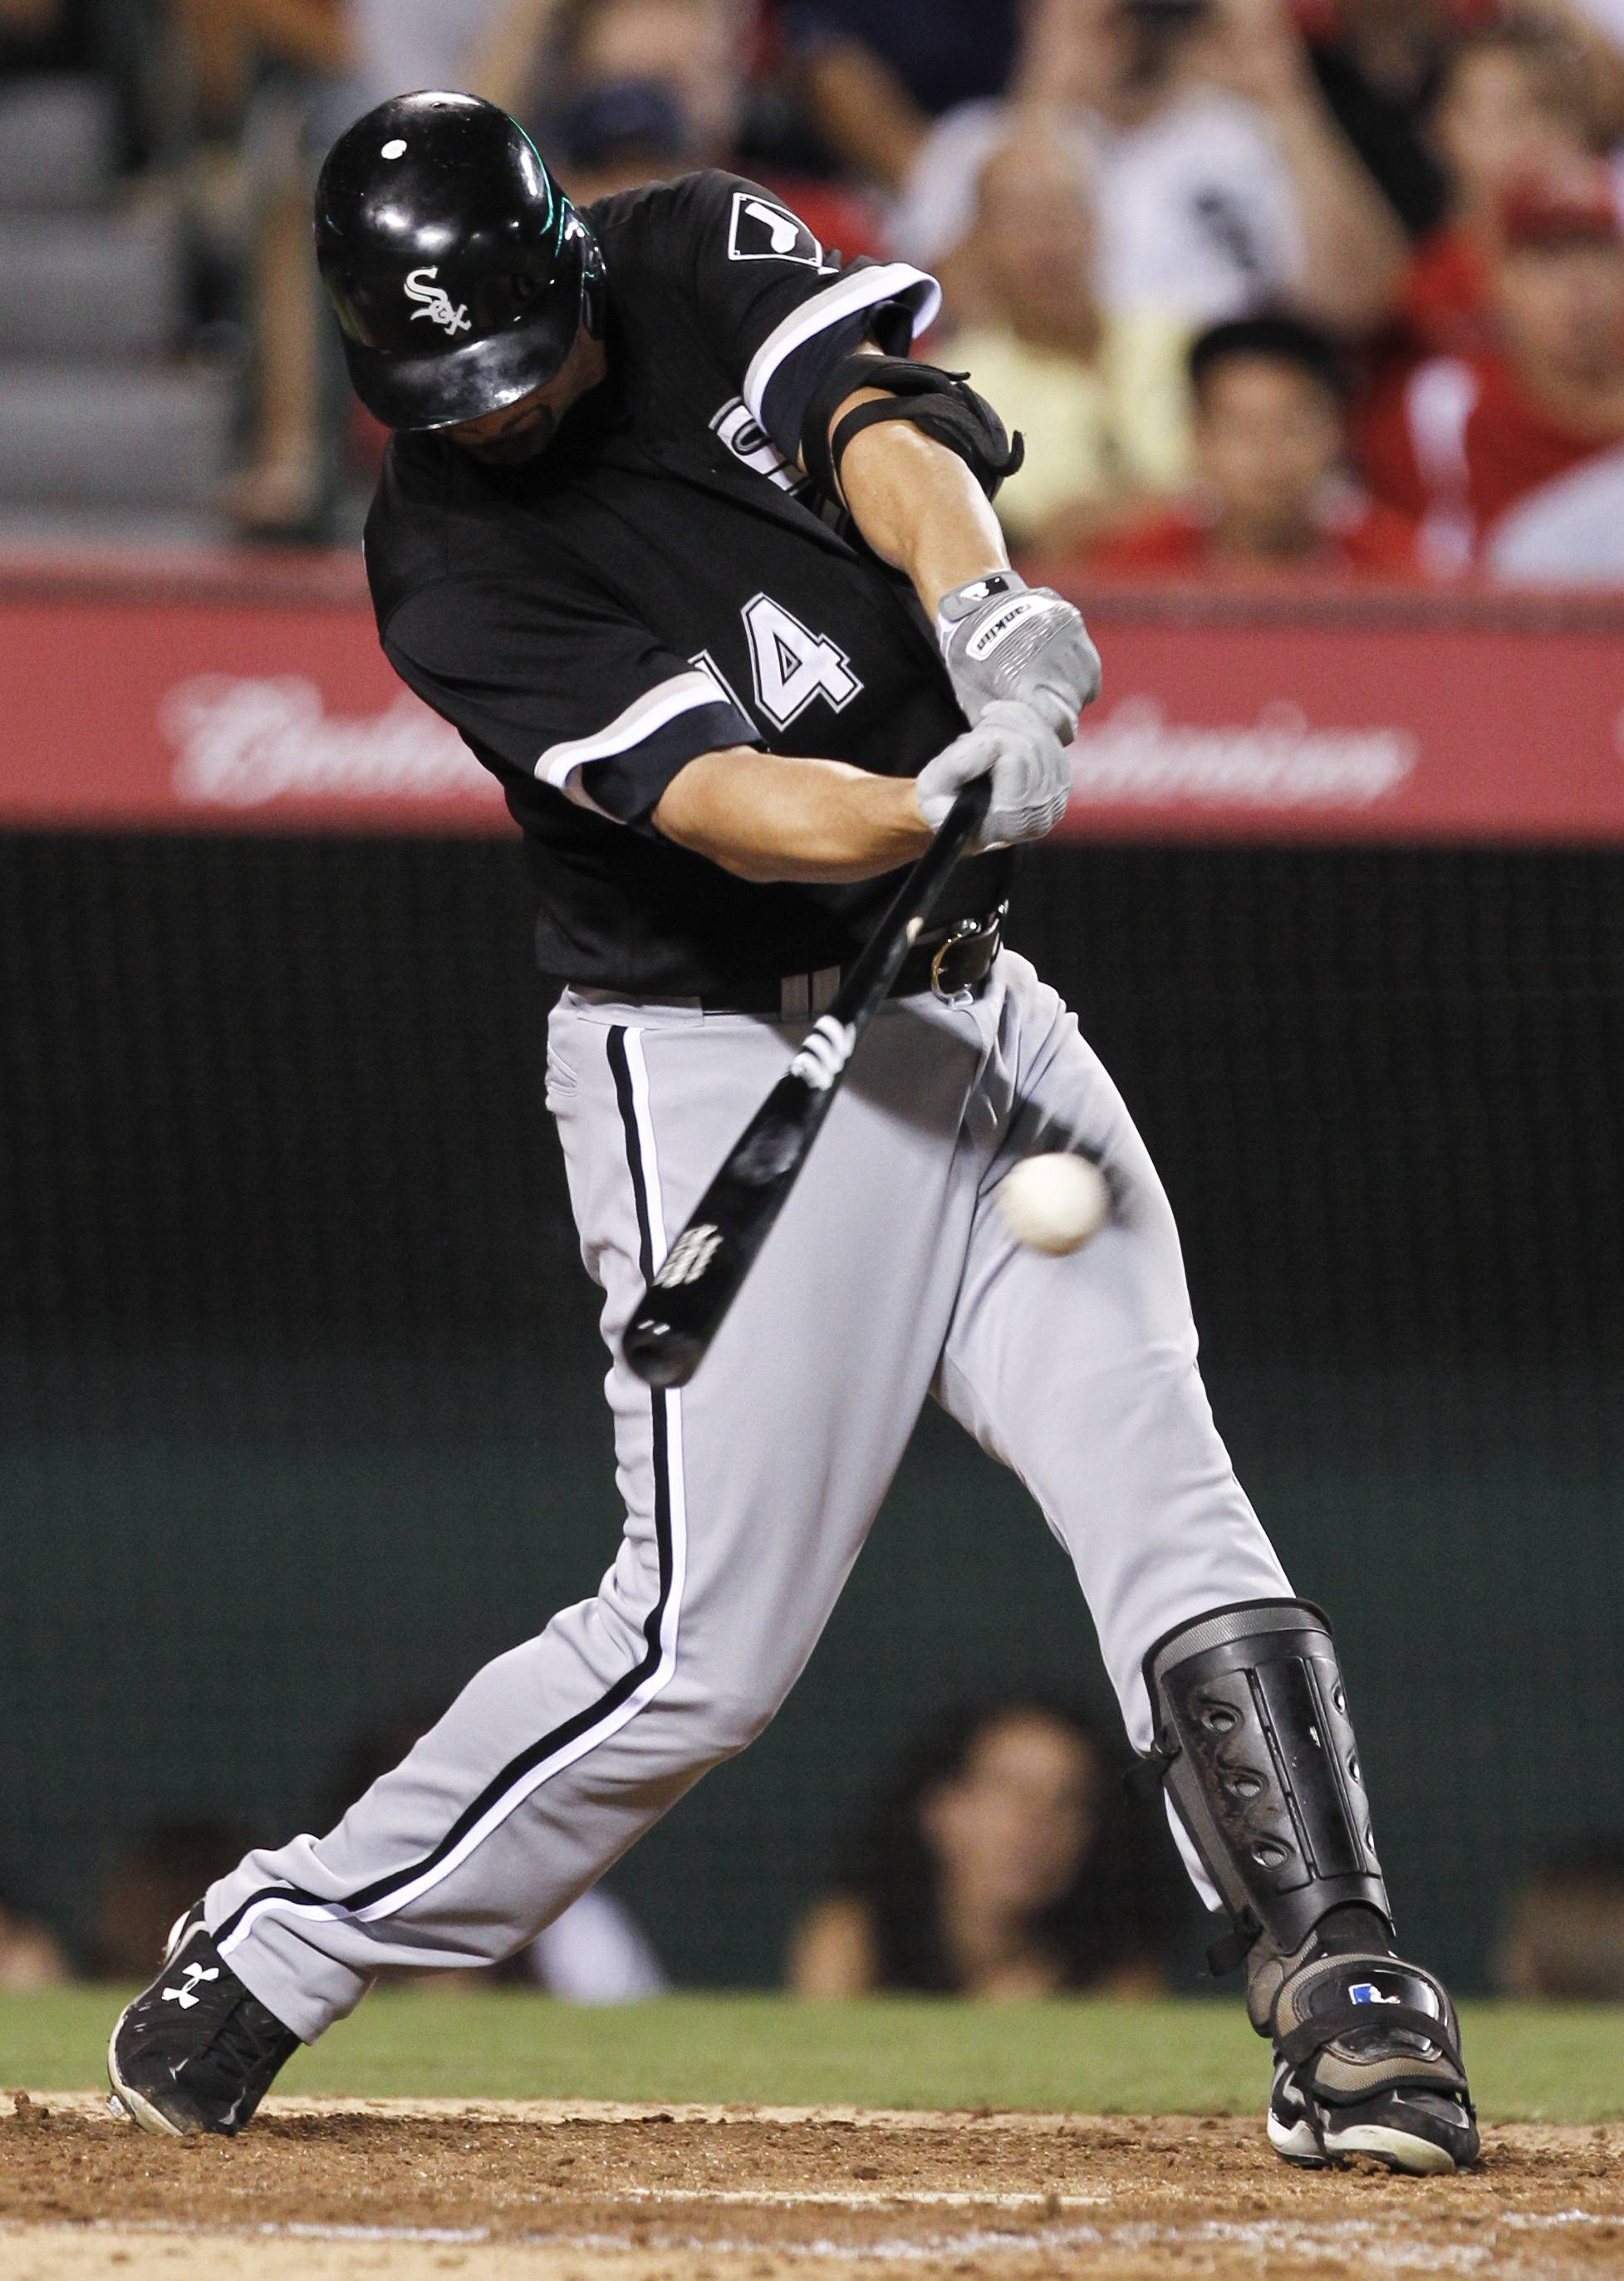 Paul Konerko hits an RBI single against the Los Angeles Angels during the eighth inning Tuesday night. It was Konerko's 2,000th career hit.